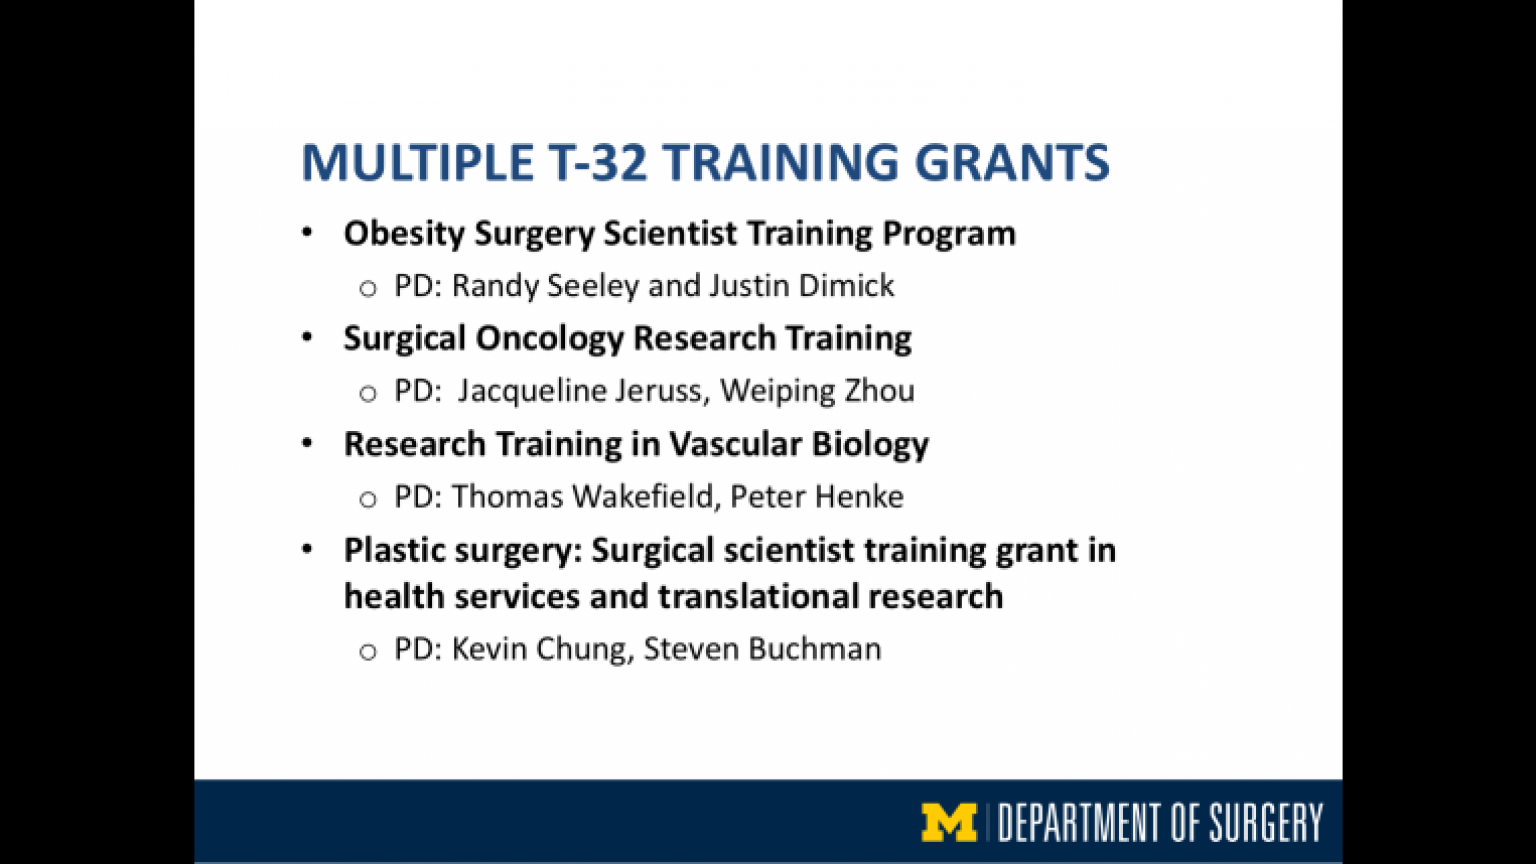 """Multiple T-32 Training Grants - twelfth slide of """"This Is What We Stand For"""" presentation"""